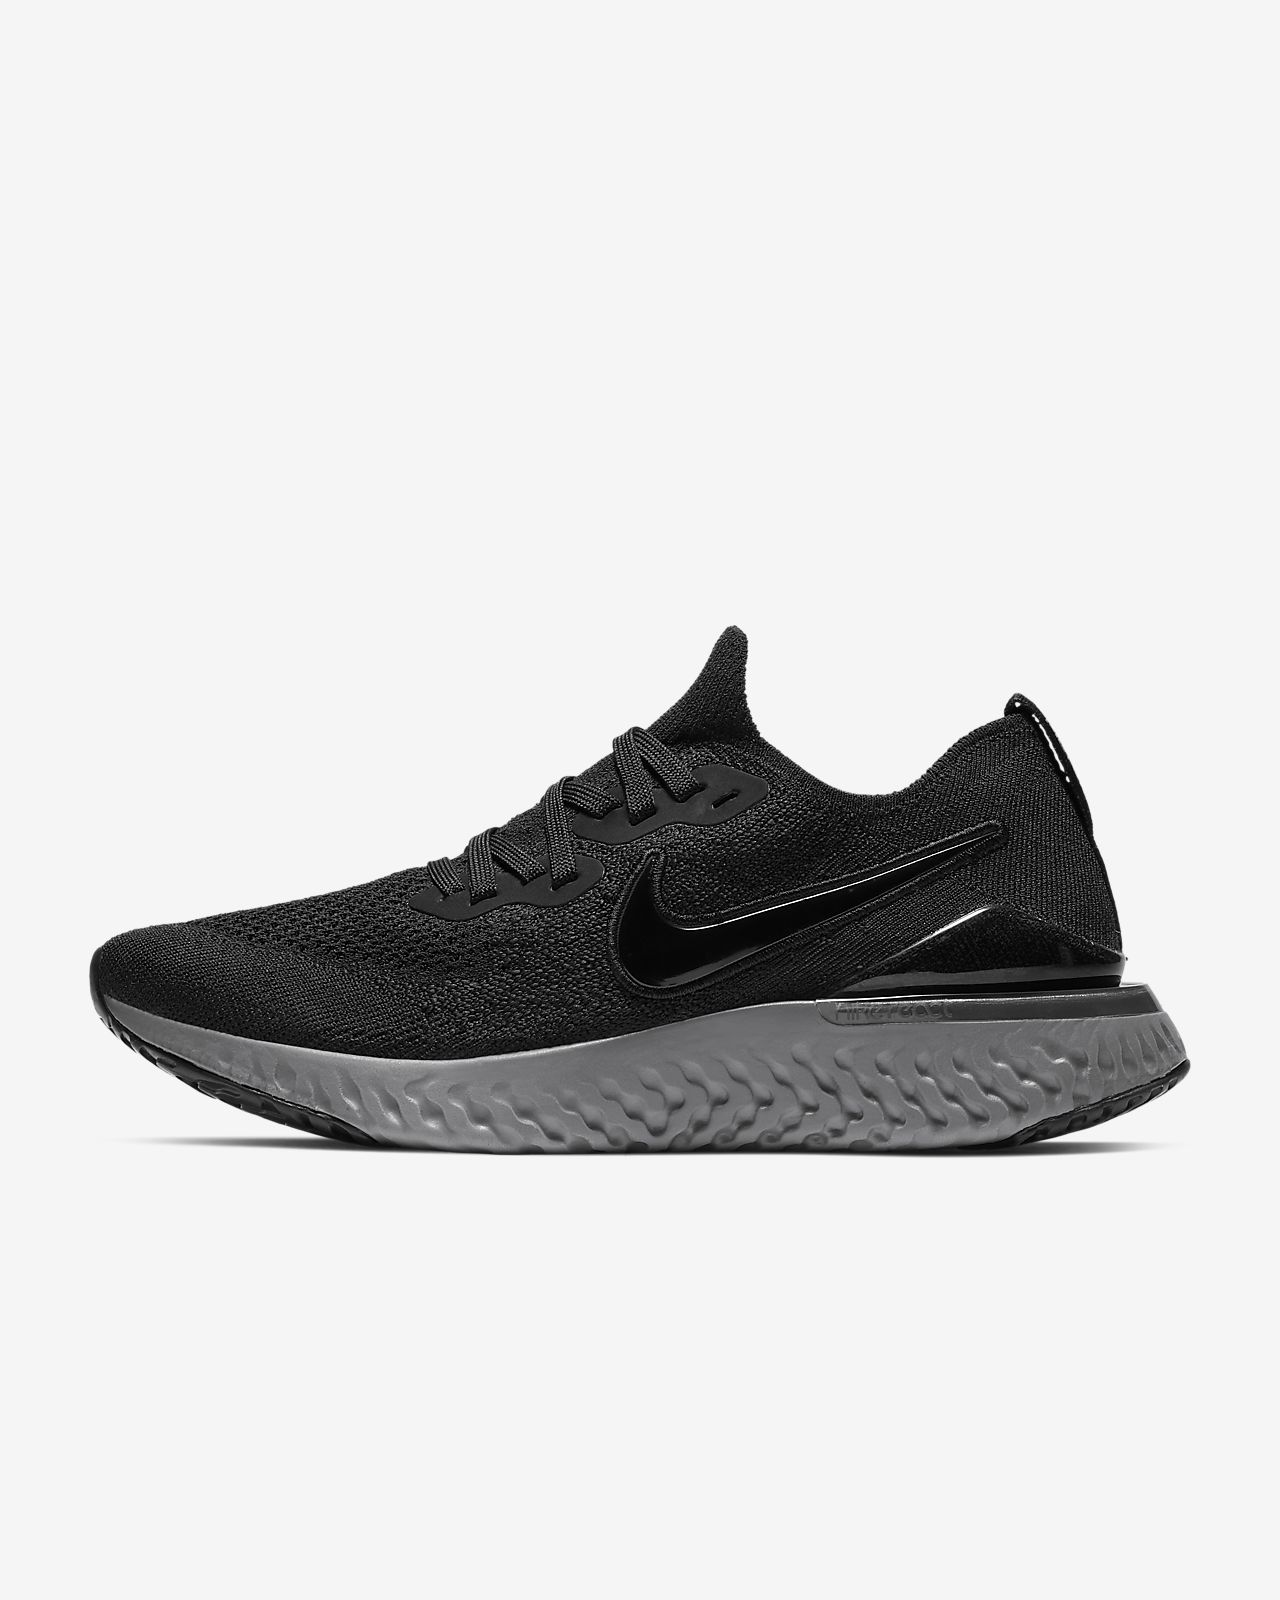 size 40 ba495 d1d79 Women s Running Shoe. Nike Epic React Flyknit 2